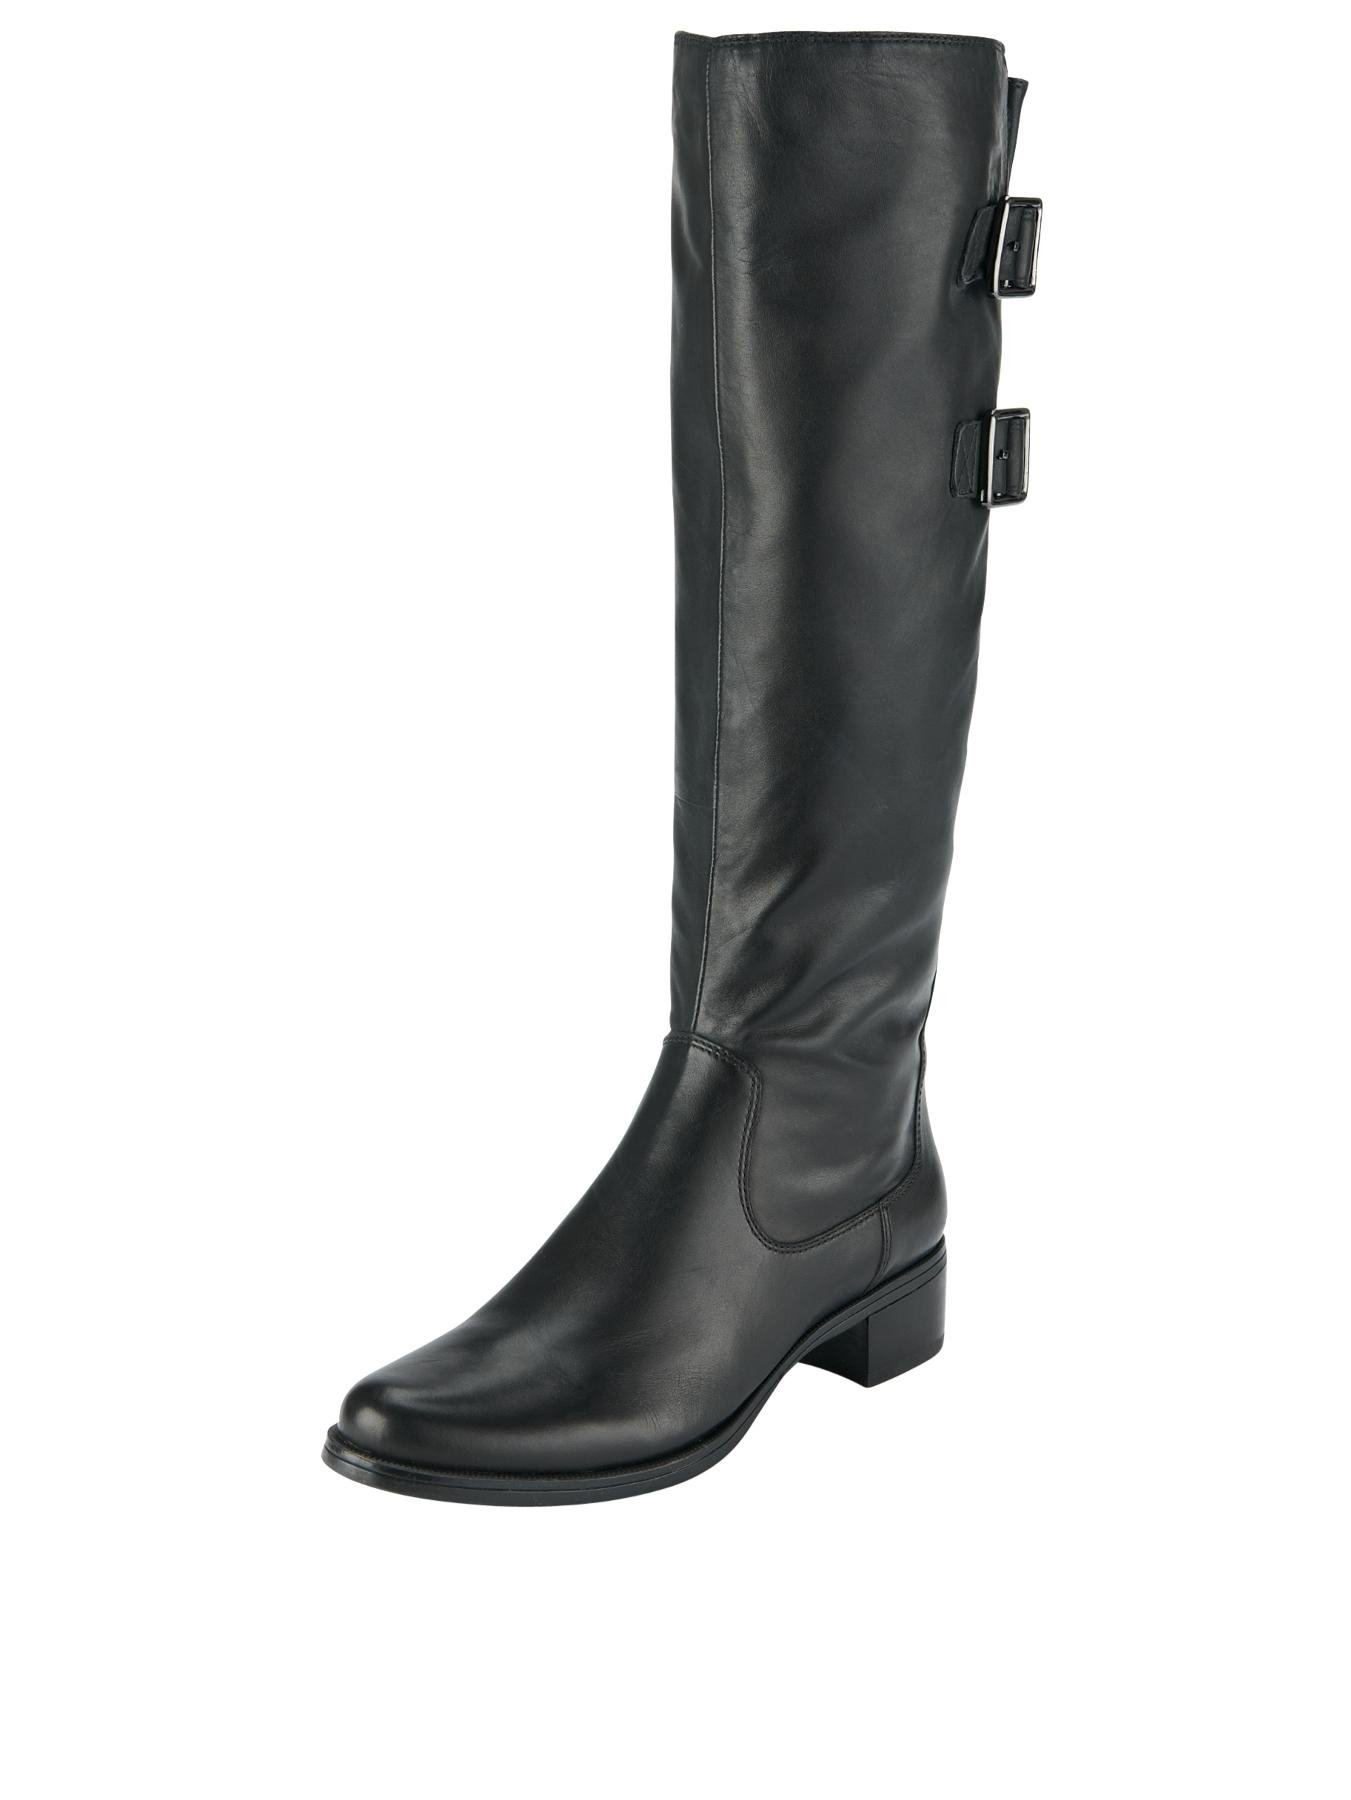 clarks clarks likeable me adjustable knee high boots in